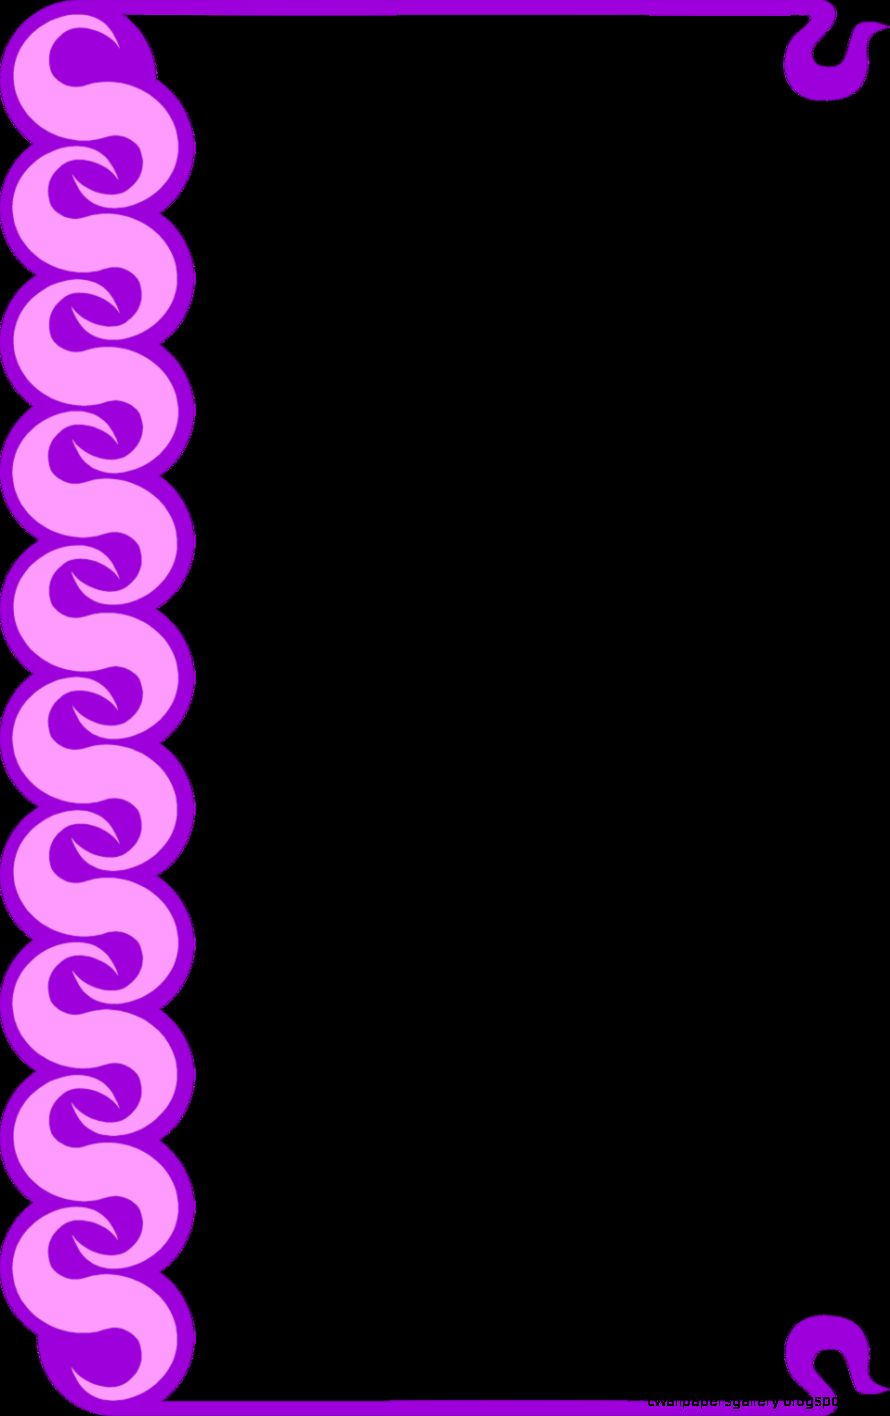 Border Purple  Free Stock Photo  Illustration of a blank frame